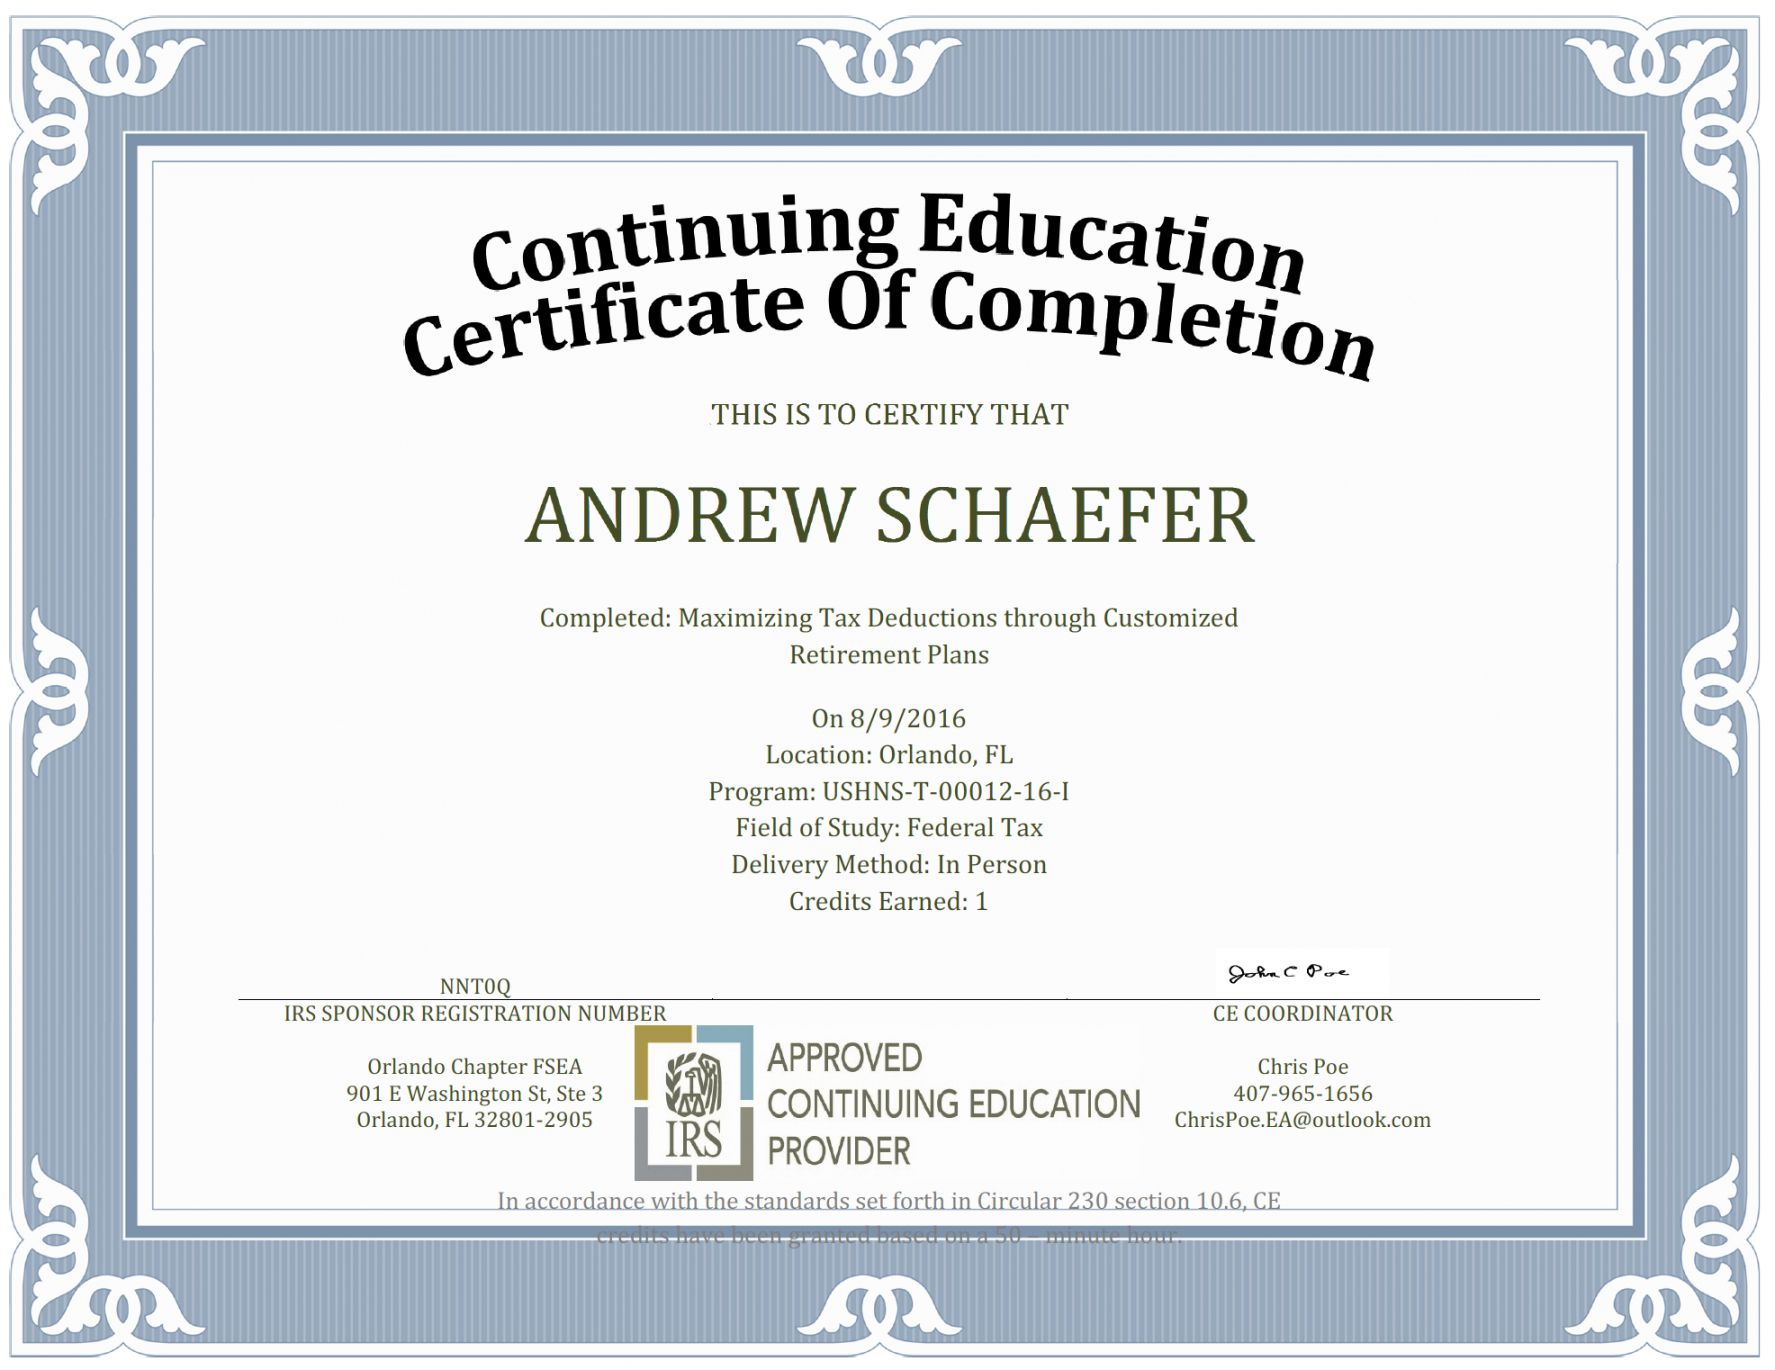 Get Our Image Of Continuing Education Certificate Template Education Certificate Certificate Of Completion Template Certificate Of Completion